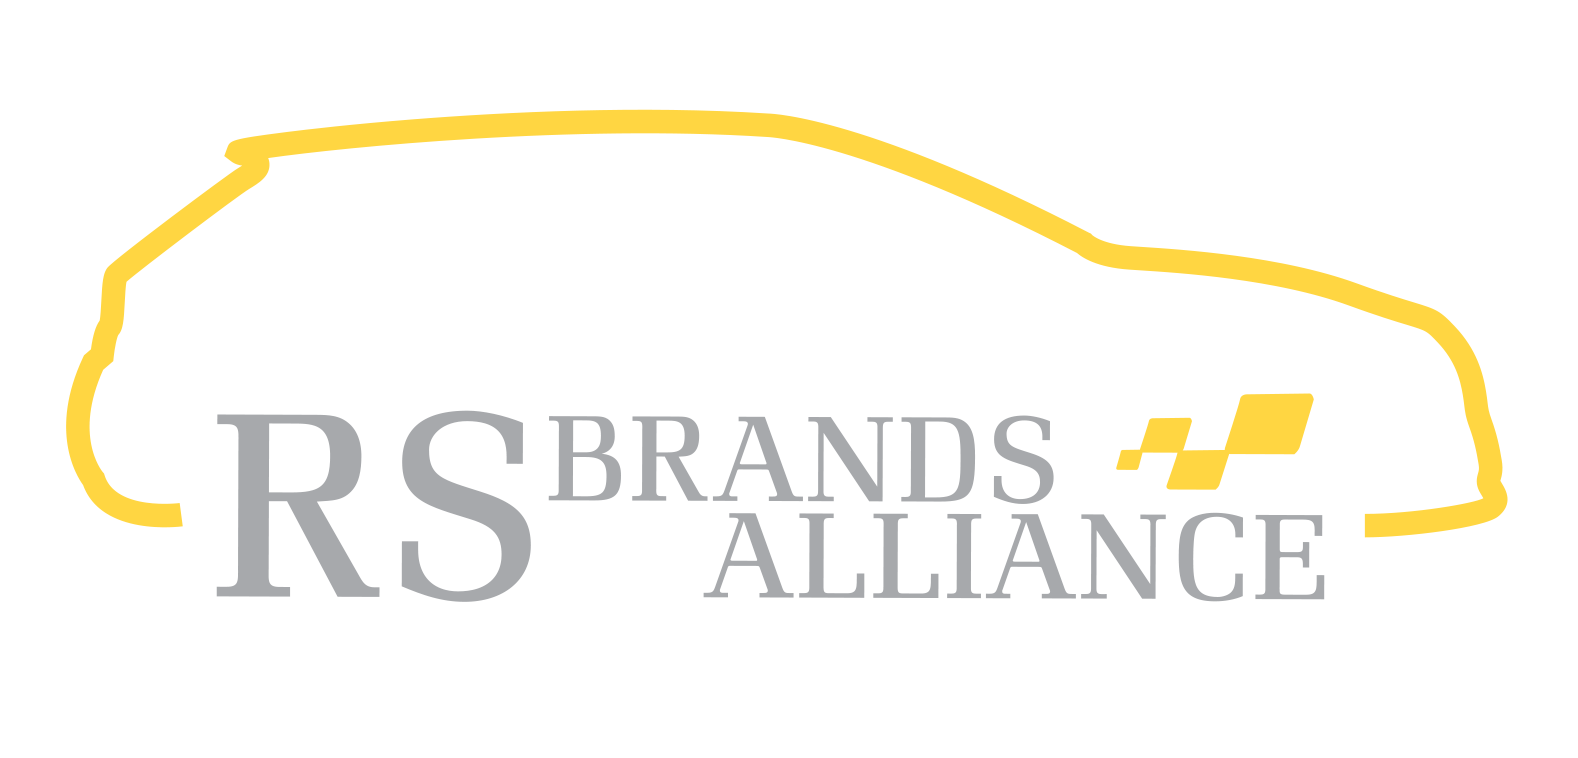 RS Brands Alliance